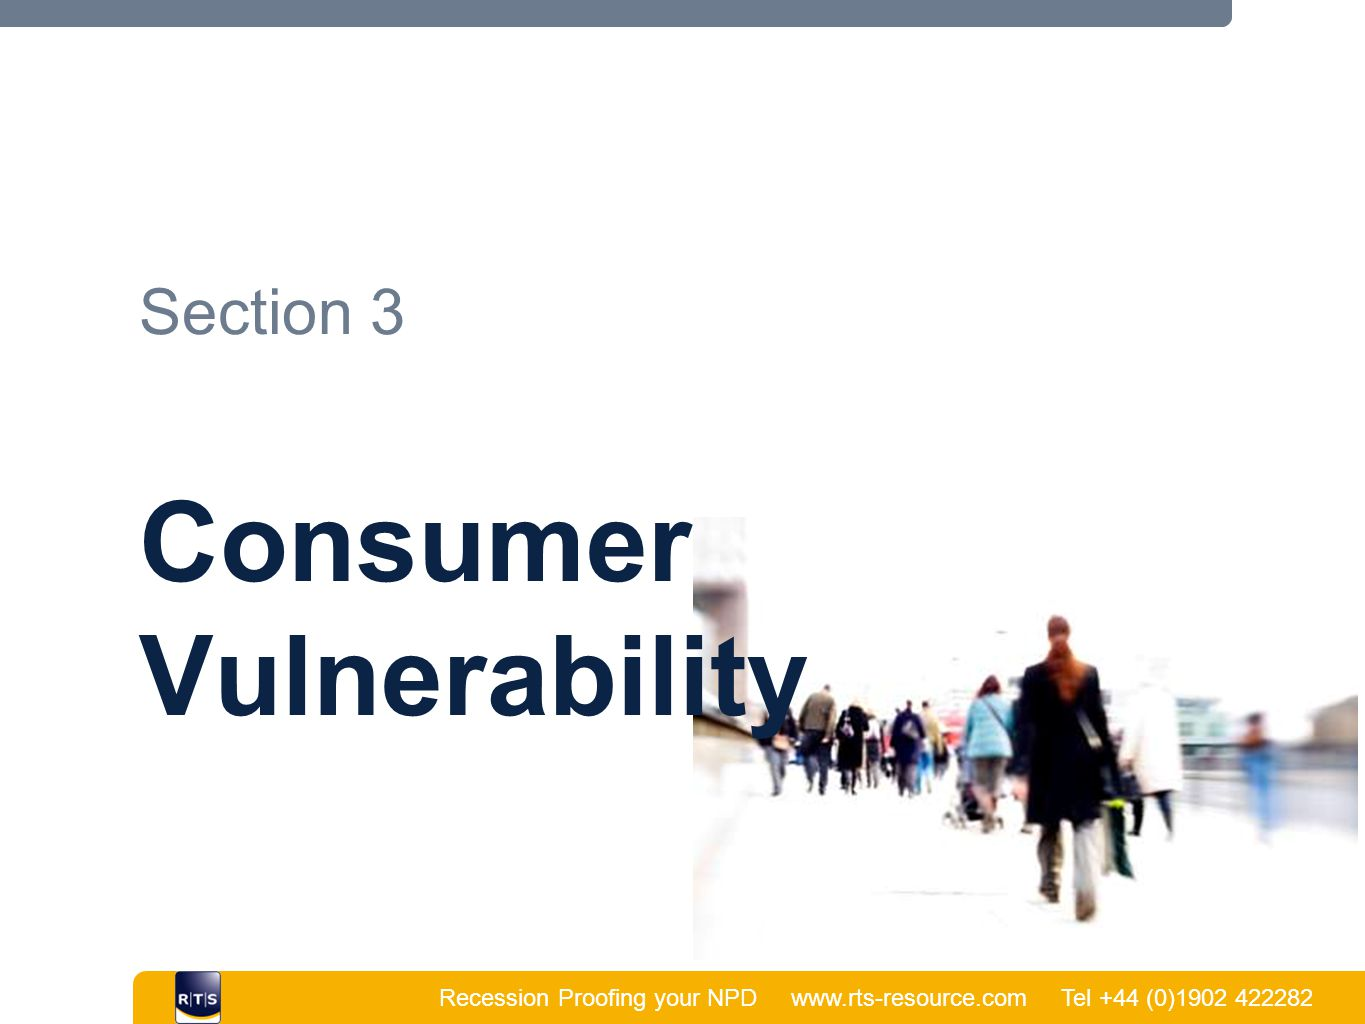 Recession Proofing your NPD www.rts-resource.com Tel +44 (0)1902 422282 | Section 3 Consumer Vulnerability